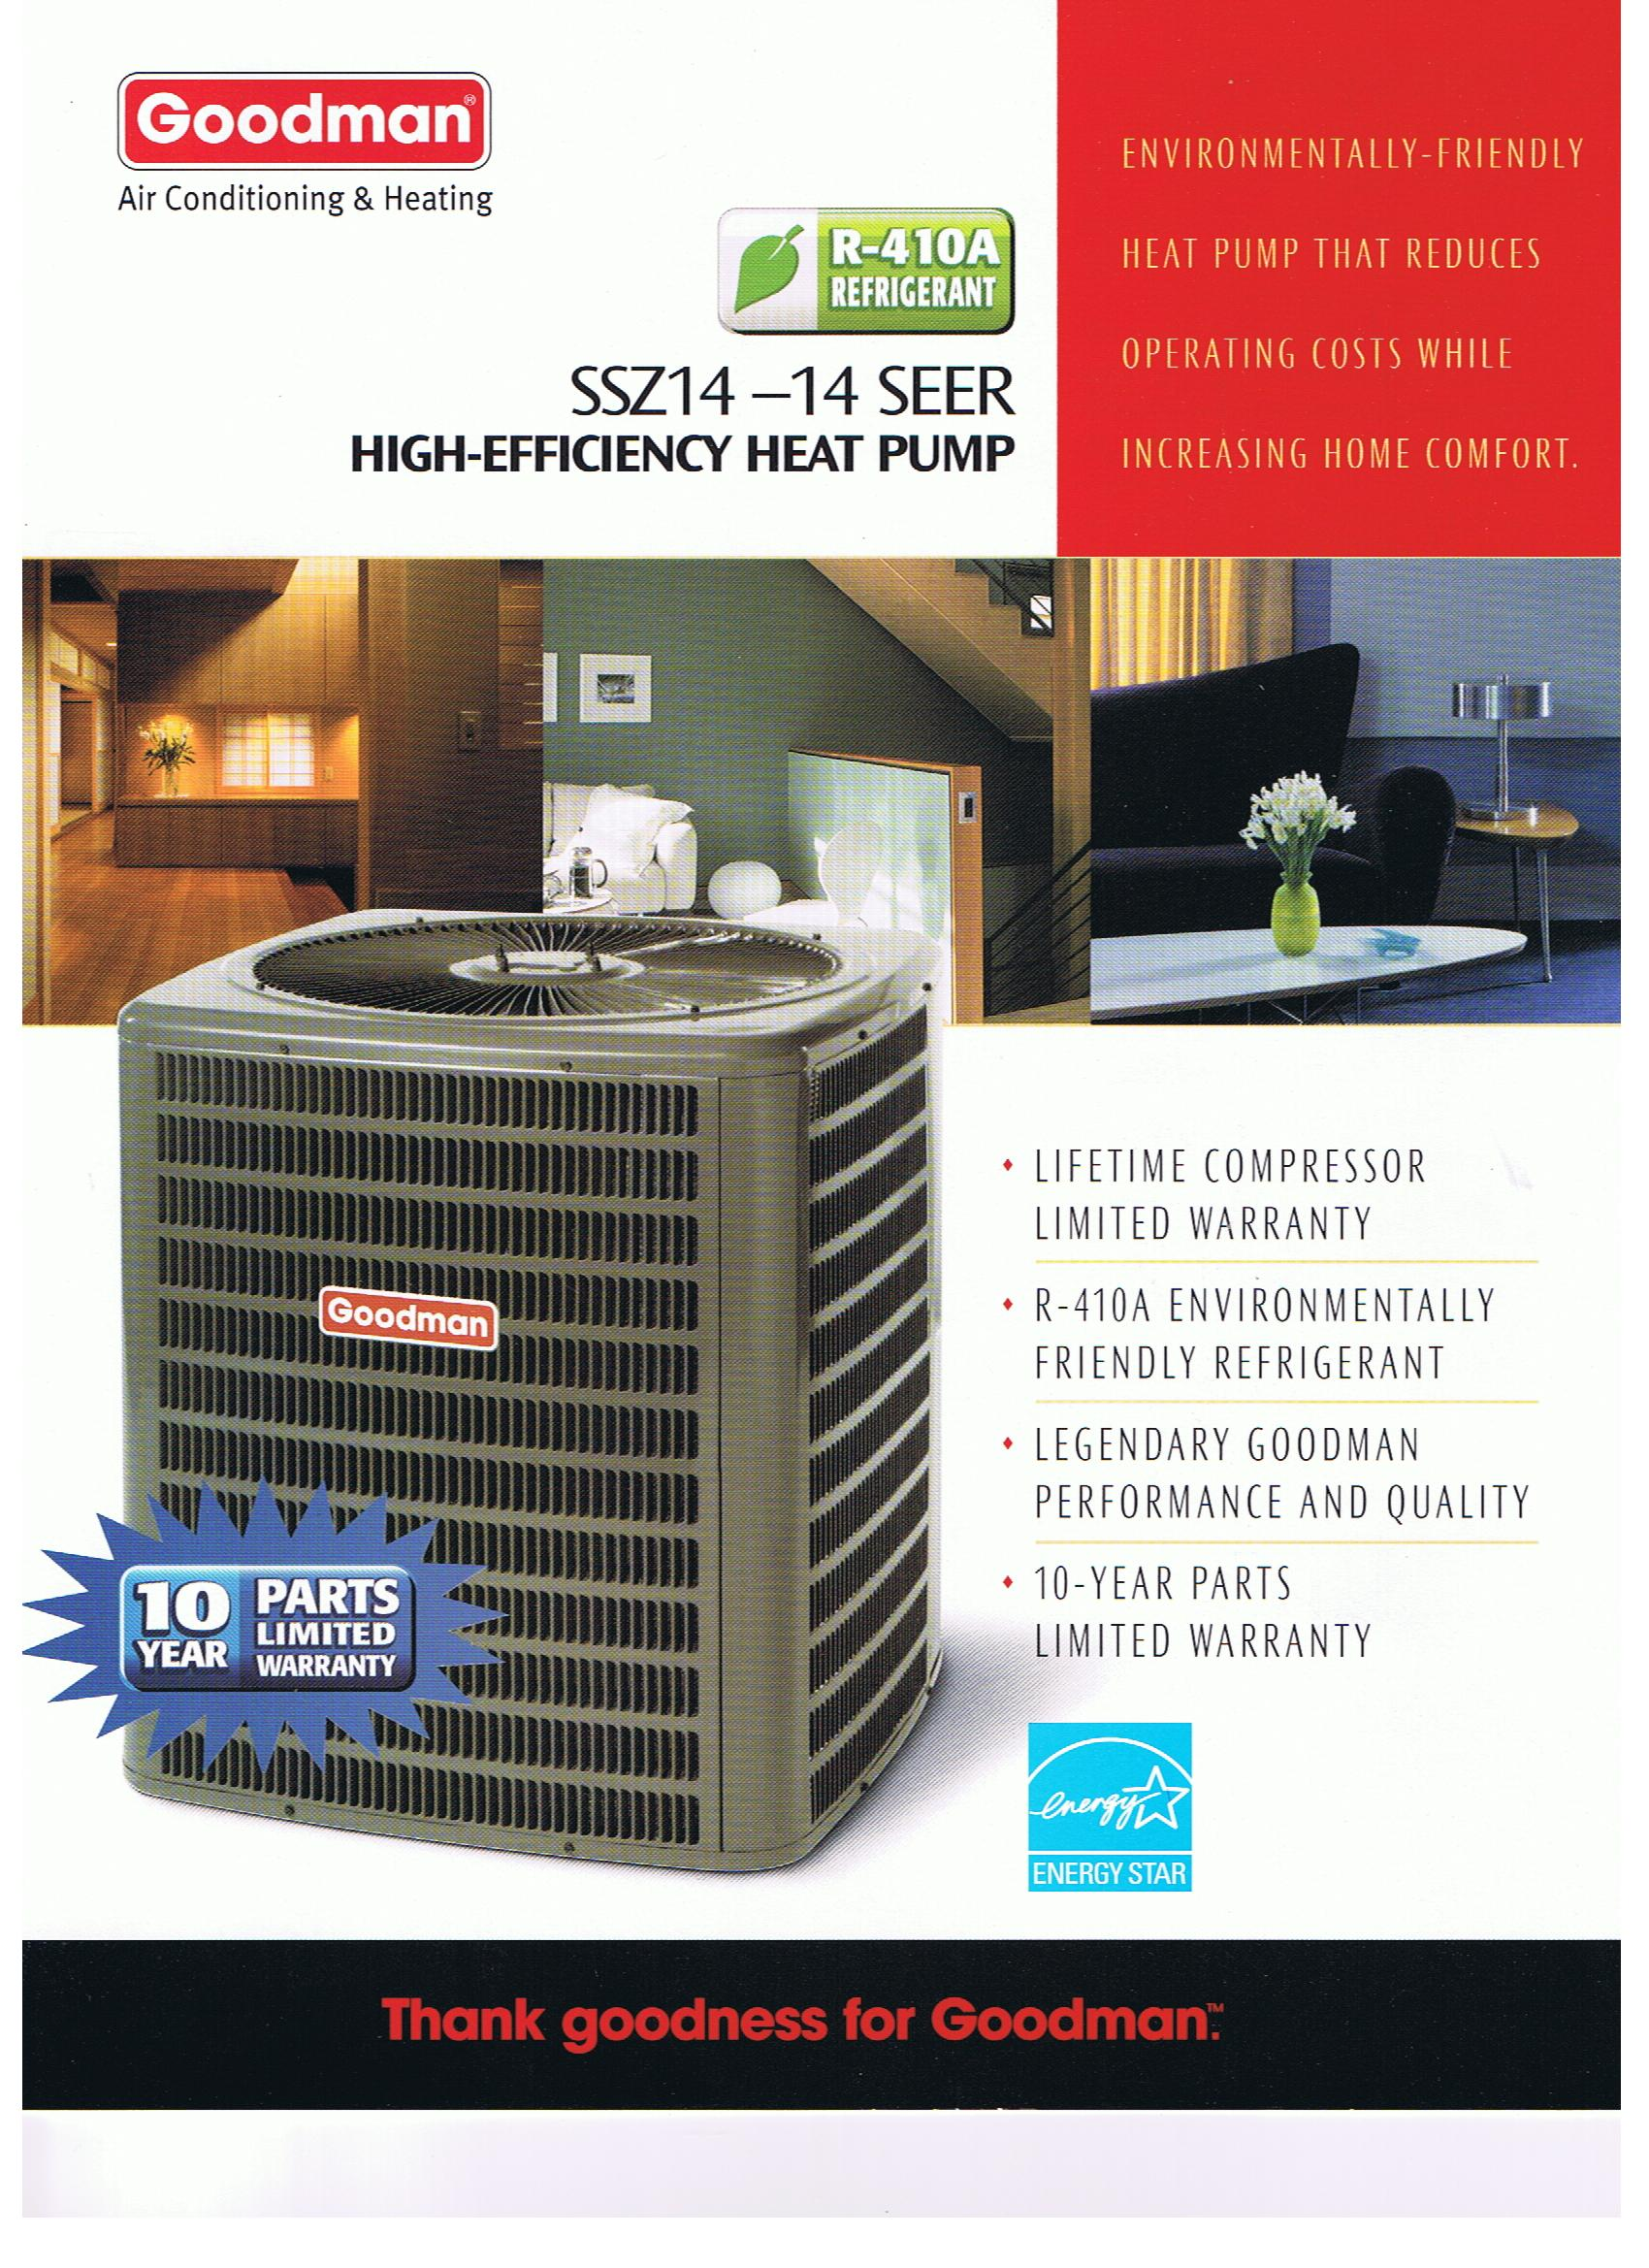 #B01B1C Air Conditioners Loyalty Heating And Cooling Rochester  Most Effective 1395 Best Heat Pump Brand pictures with 1700x2338 px on helpvideos.info - Air Conditioners, Air Coolers and more